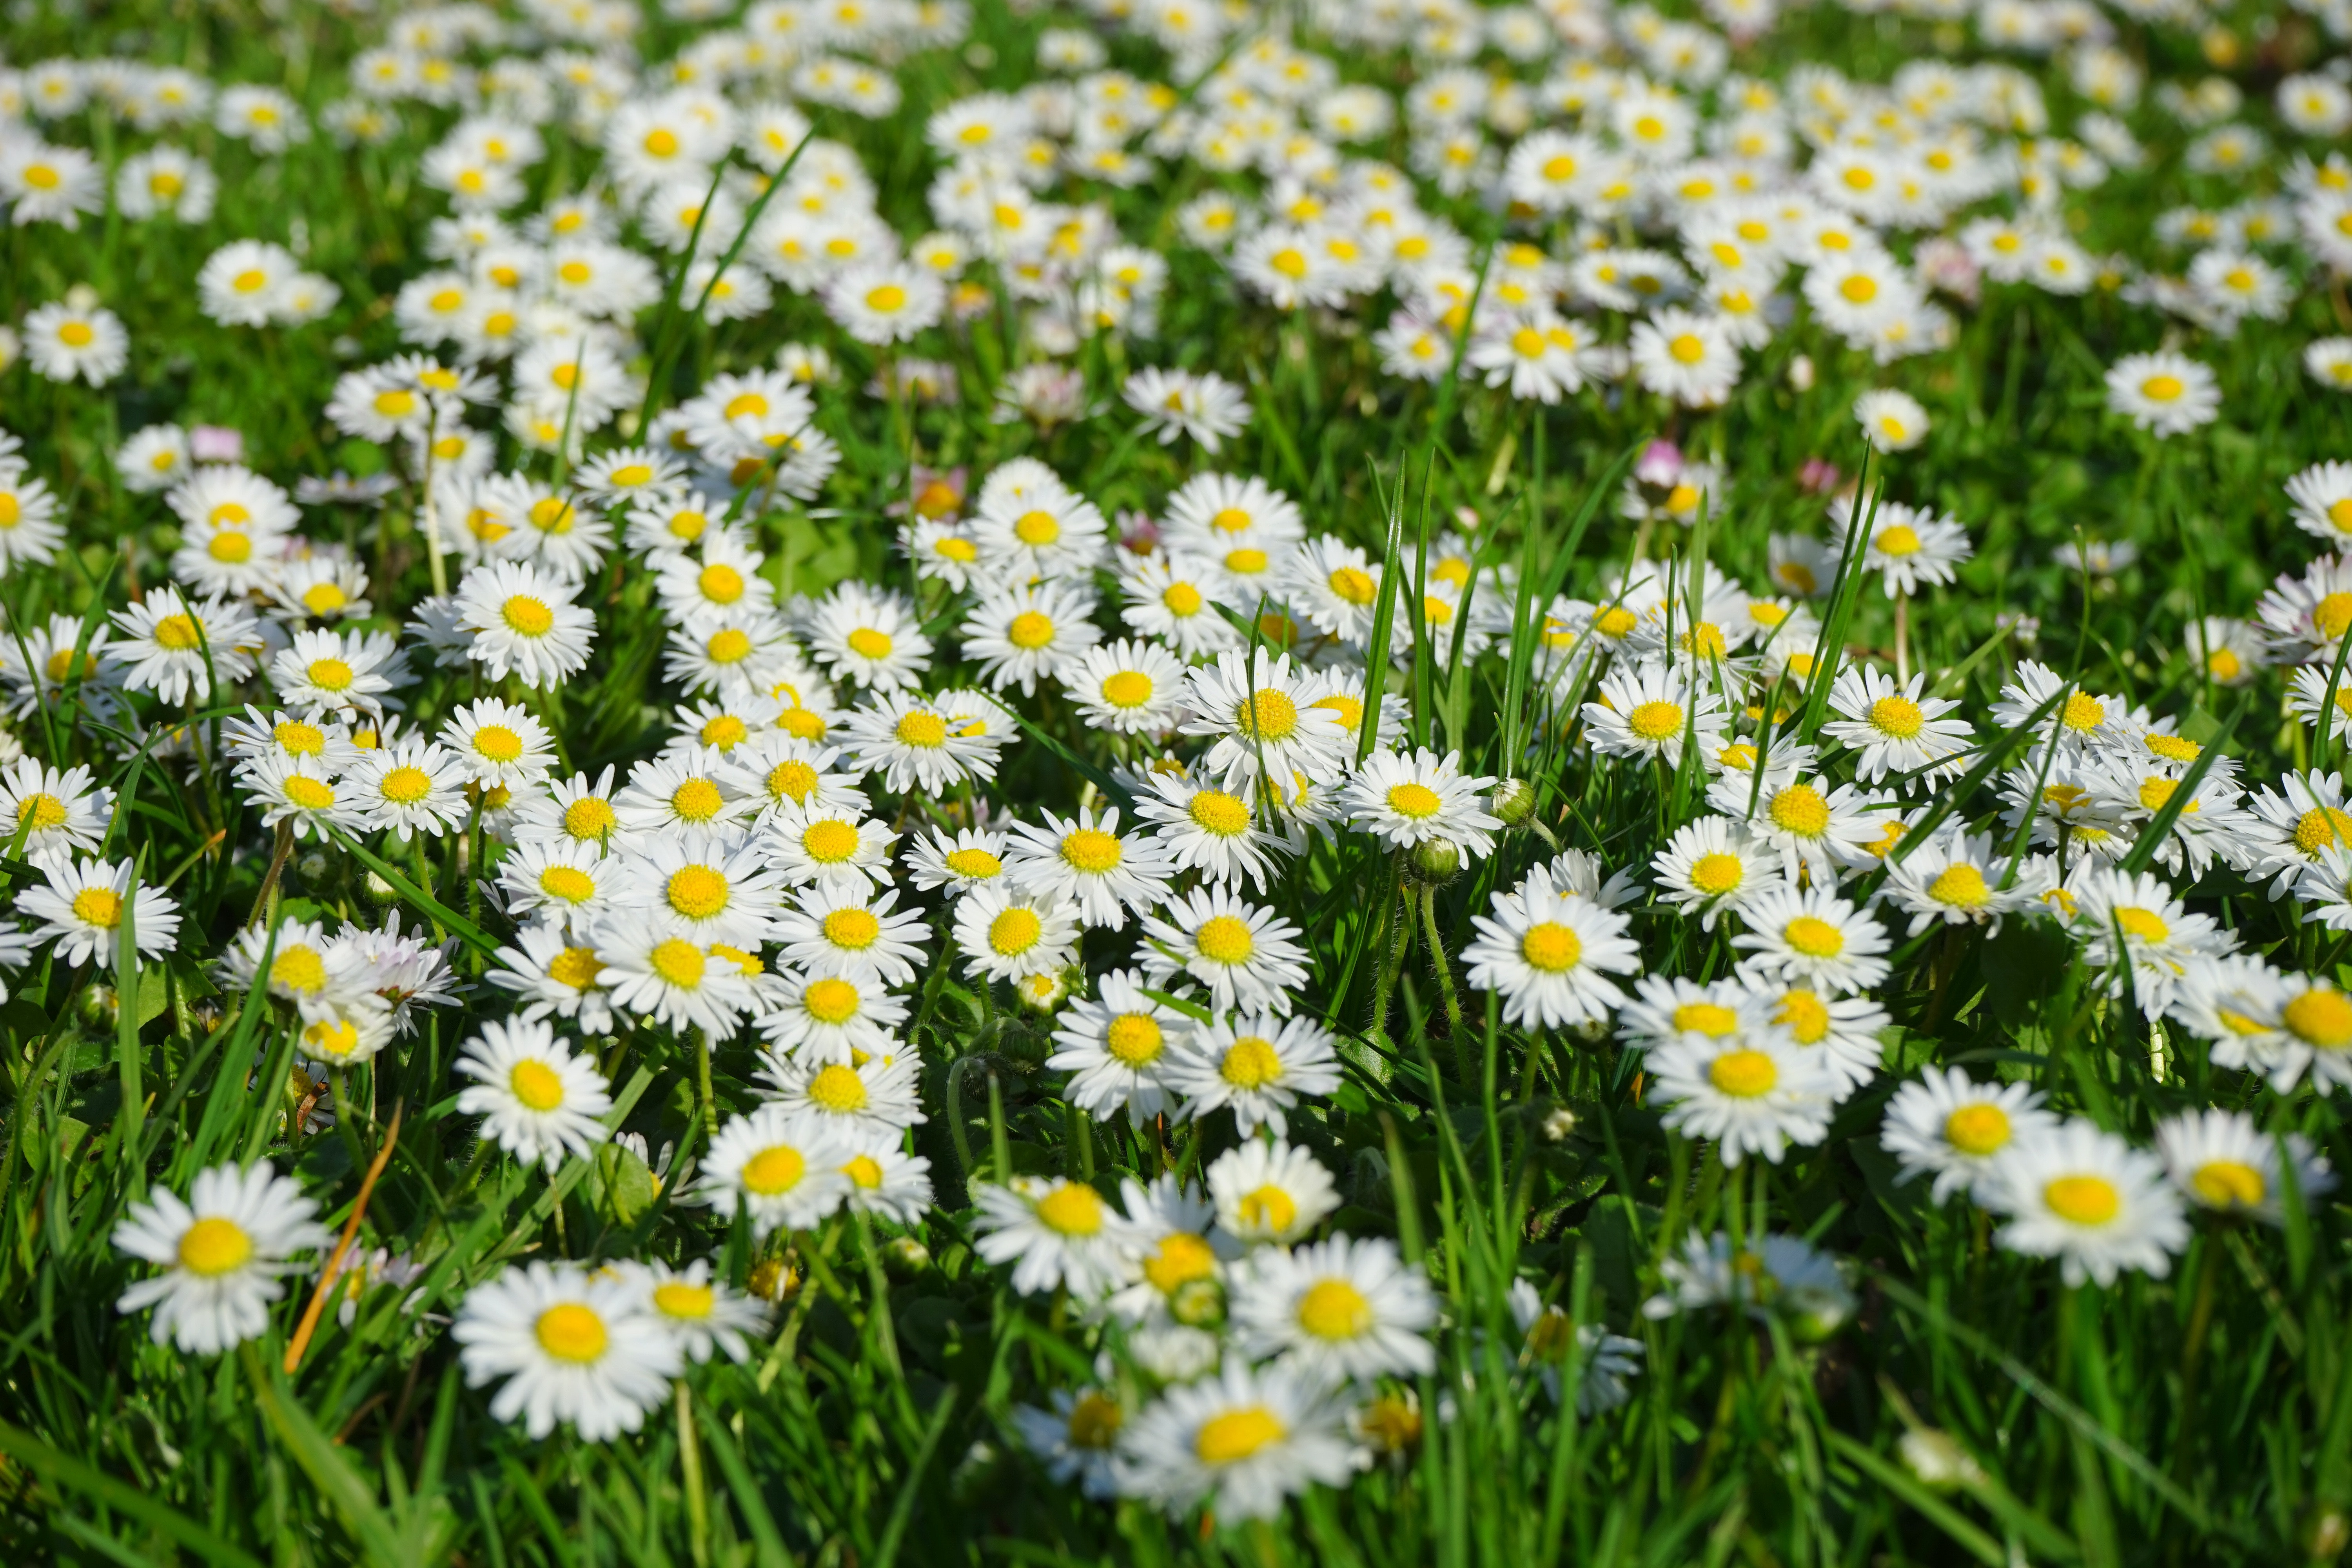 Free Photo Field Of White And Yellow Daisies Grass Nature